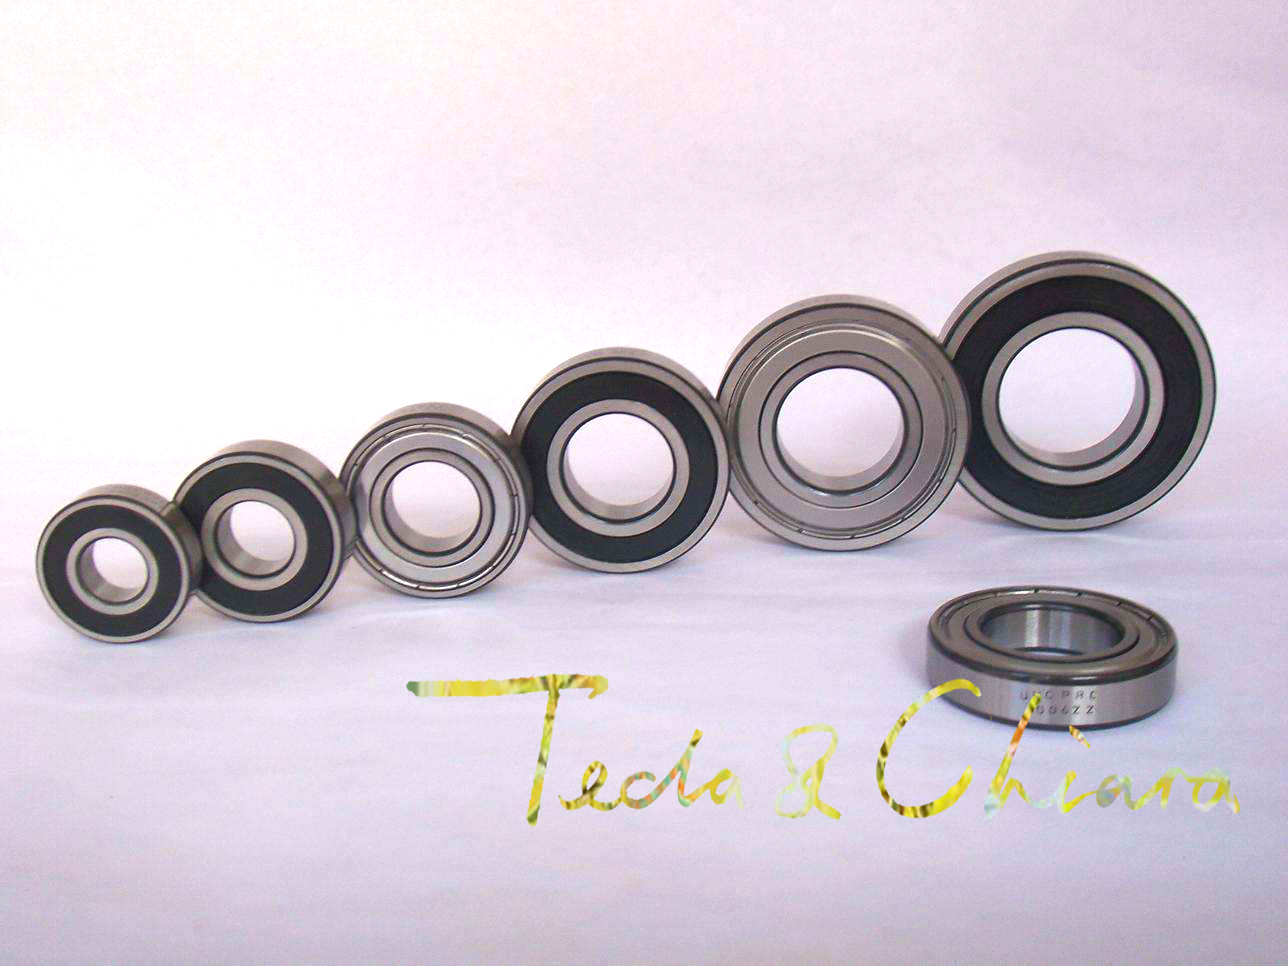 608 608ZZ 608RS 608-2Z 608Z 608-2RS ZZ RS RZ 2RZ AEBC-5 Deep Groove Ball Bearings 8 x 22 x 7mm High Quality free shipping 25x47x12mm deep groove ball bearings 6005 zz 2z 6005zz bearing 6005zz 6005 2rs